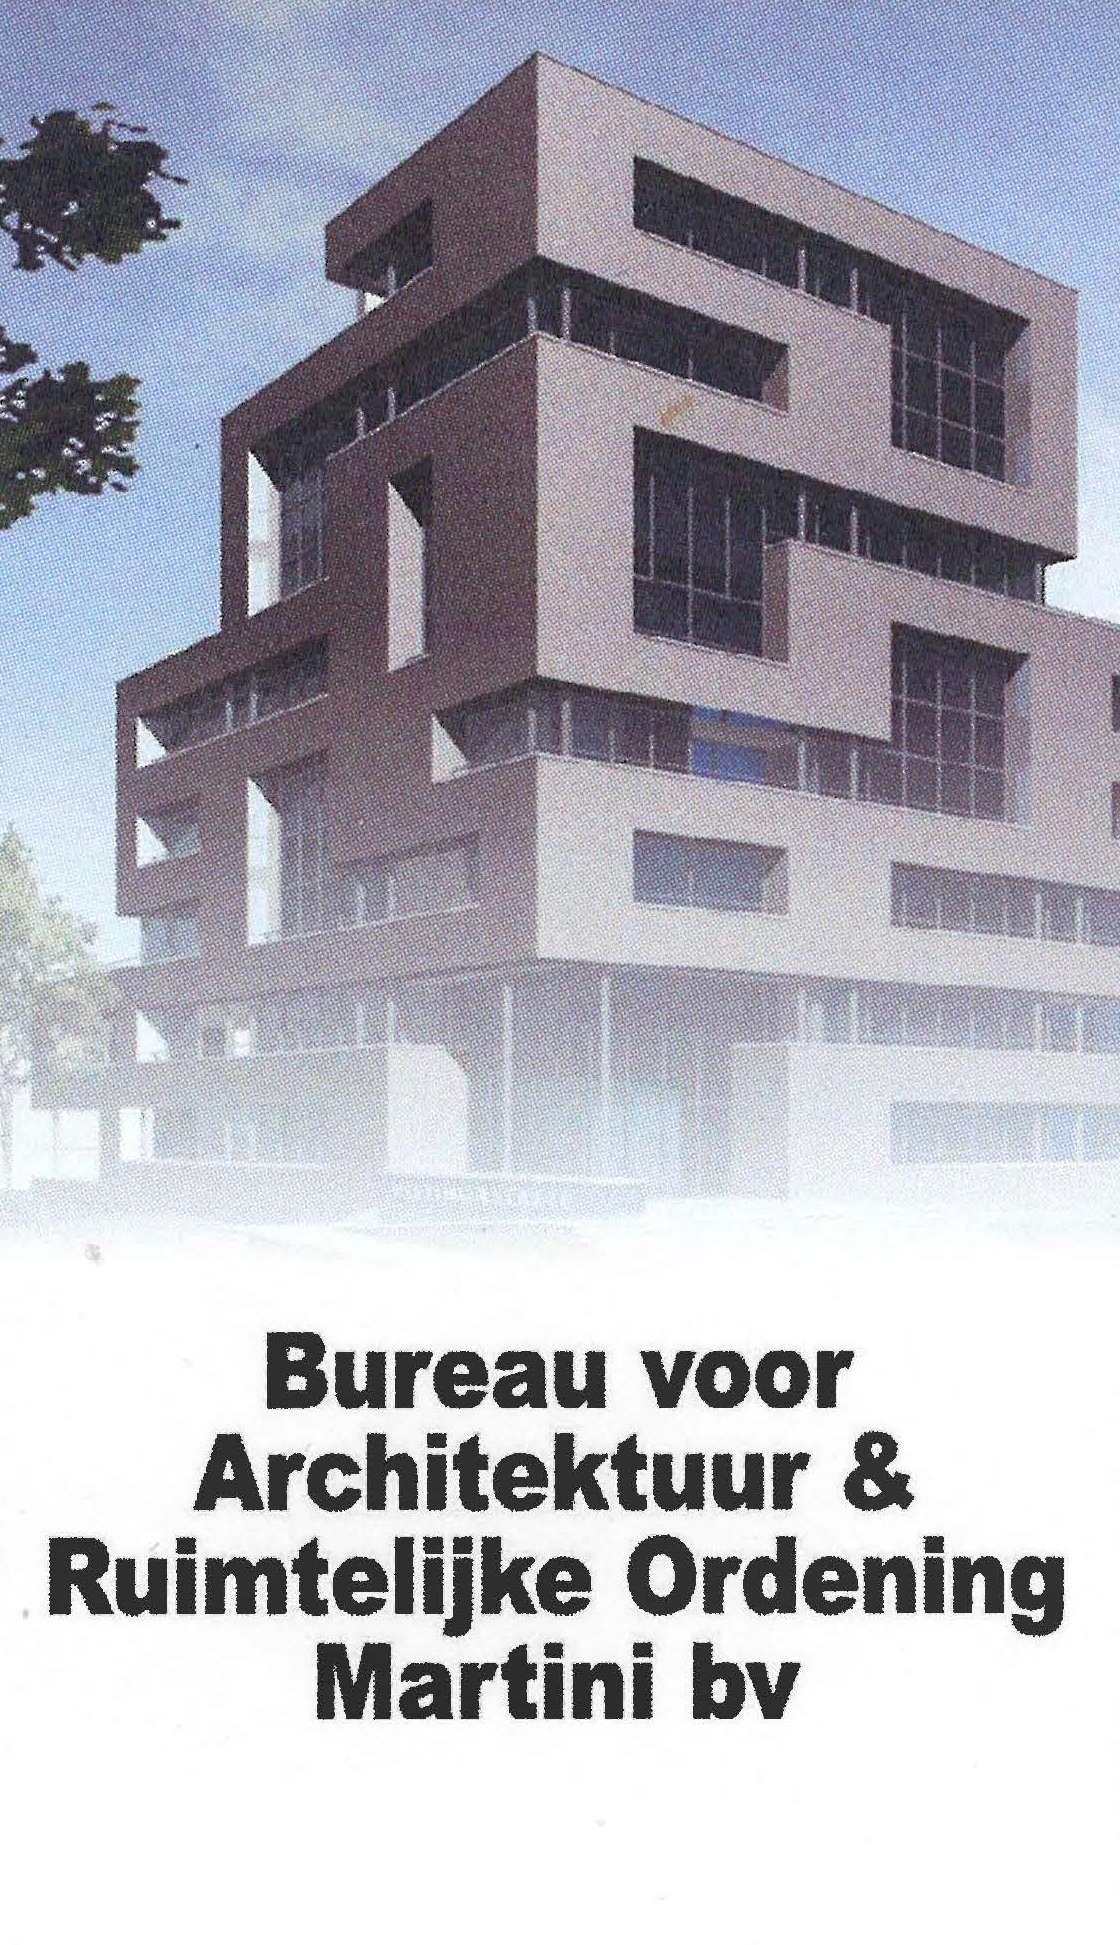 Martini Architekten